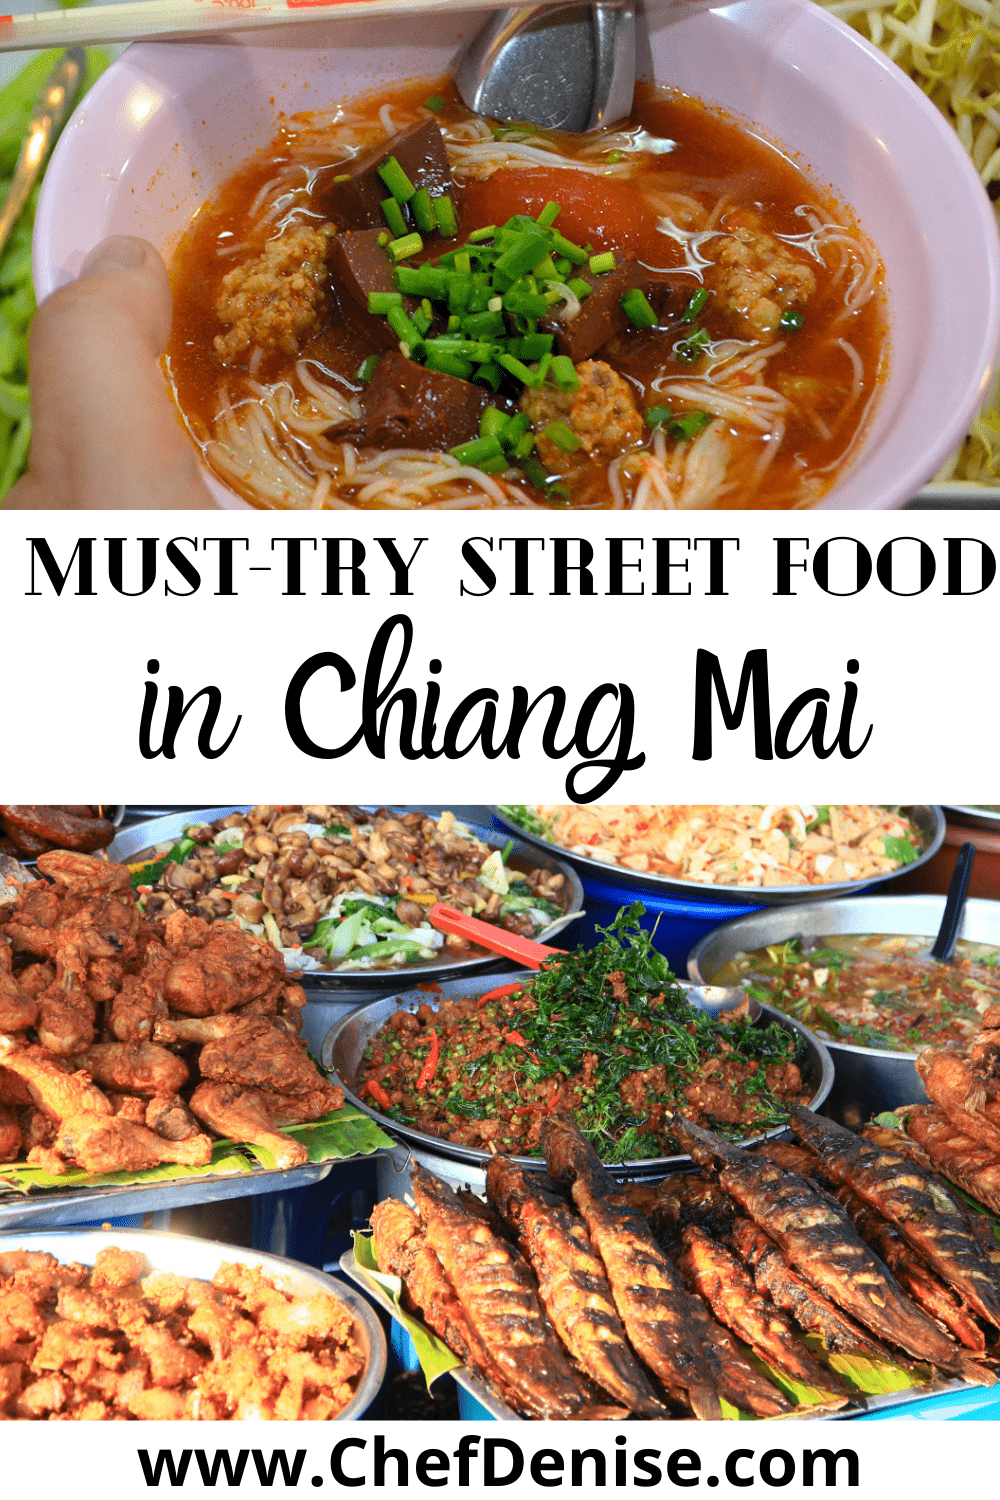 Pin for street food in Chiang Mai.